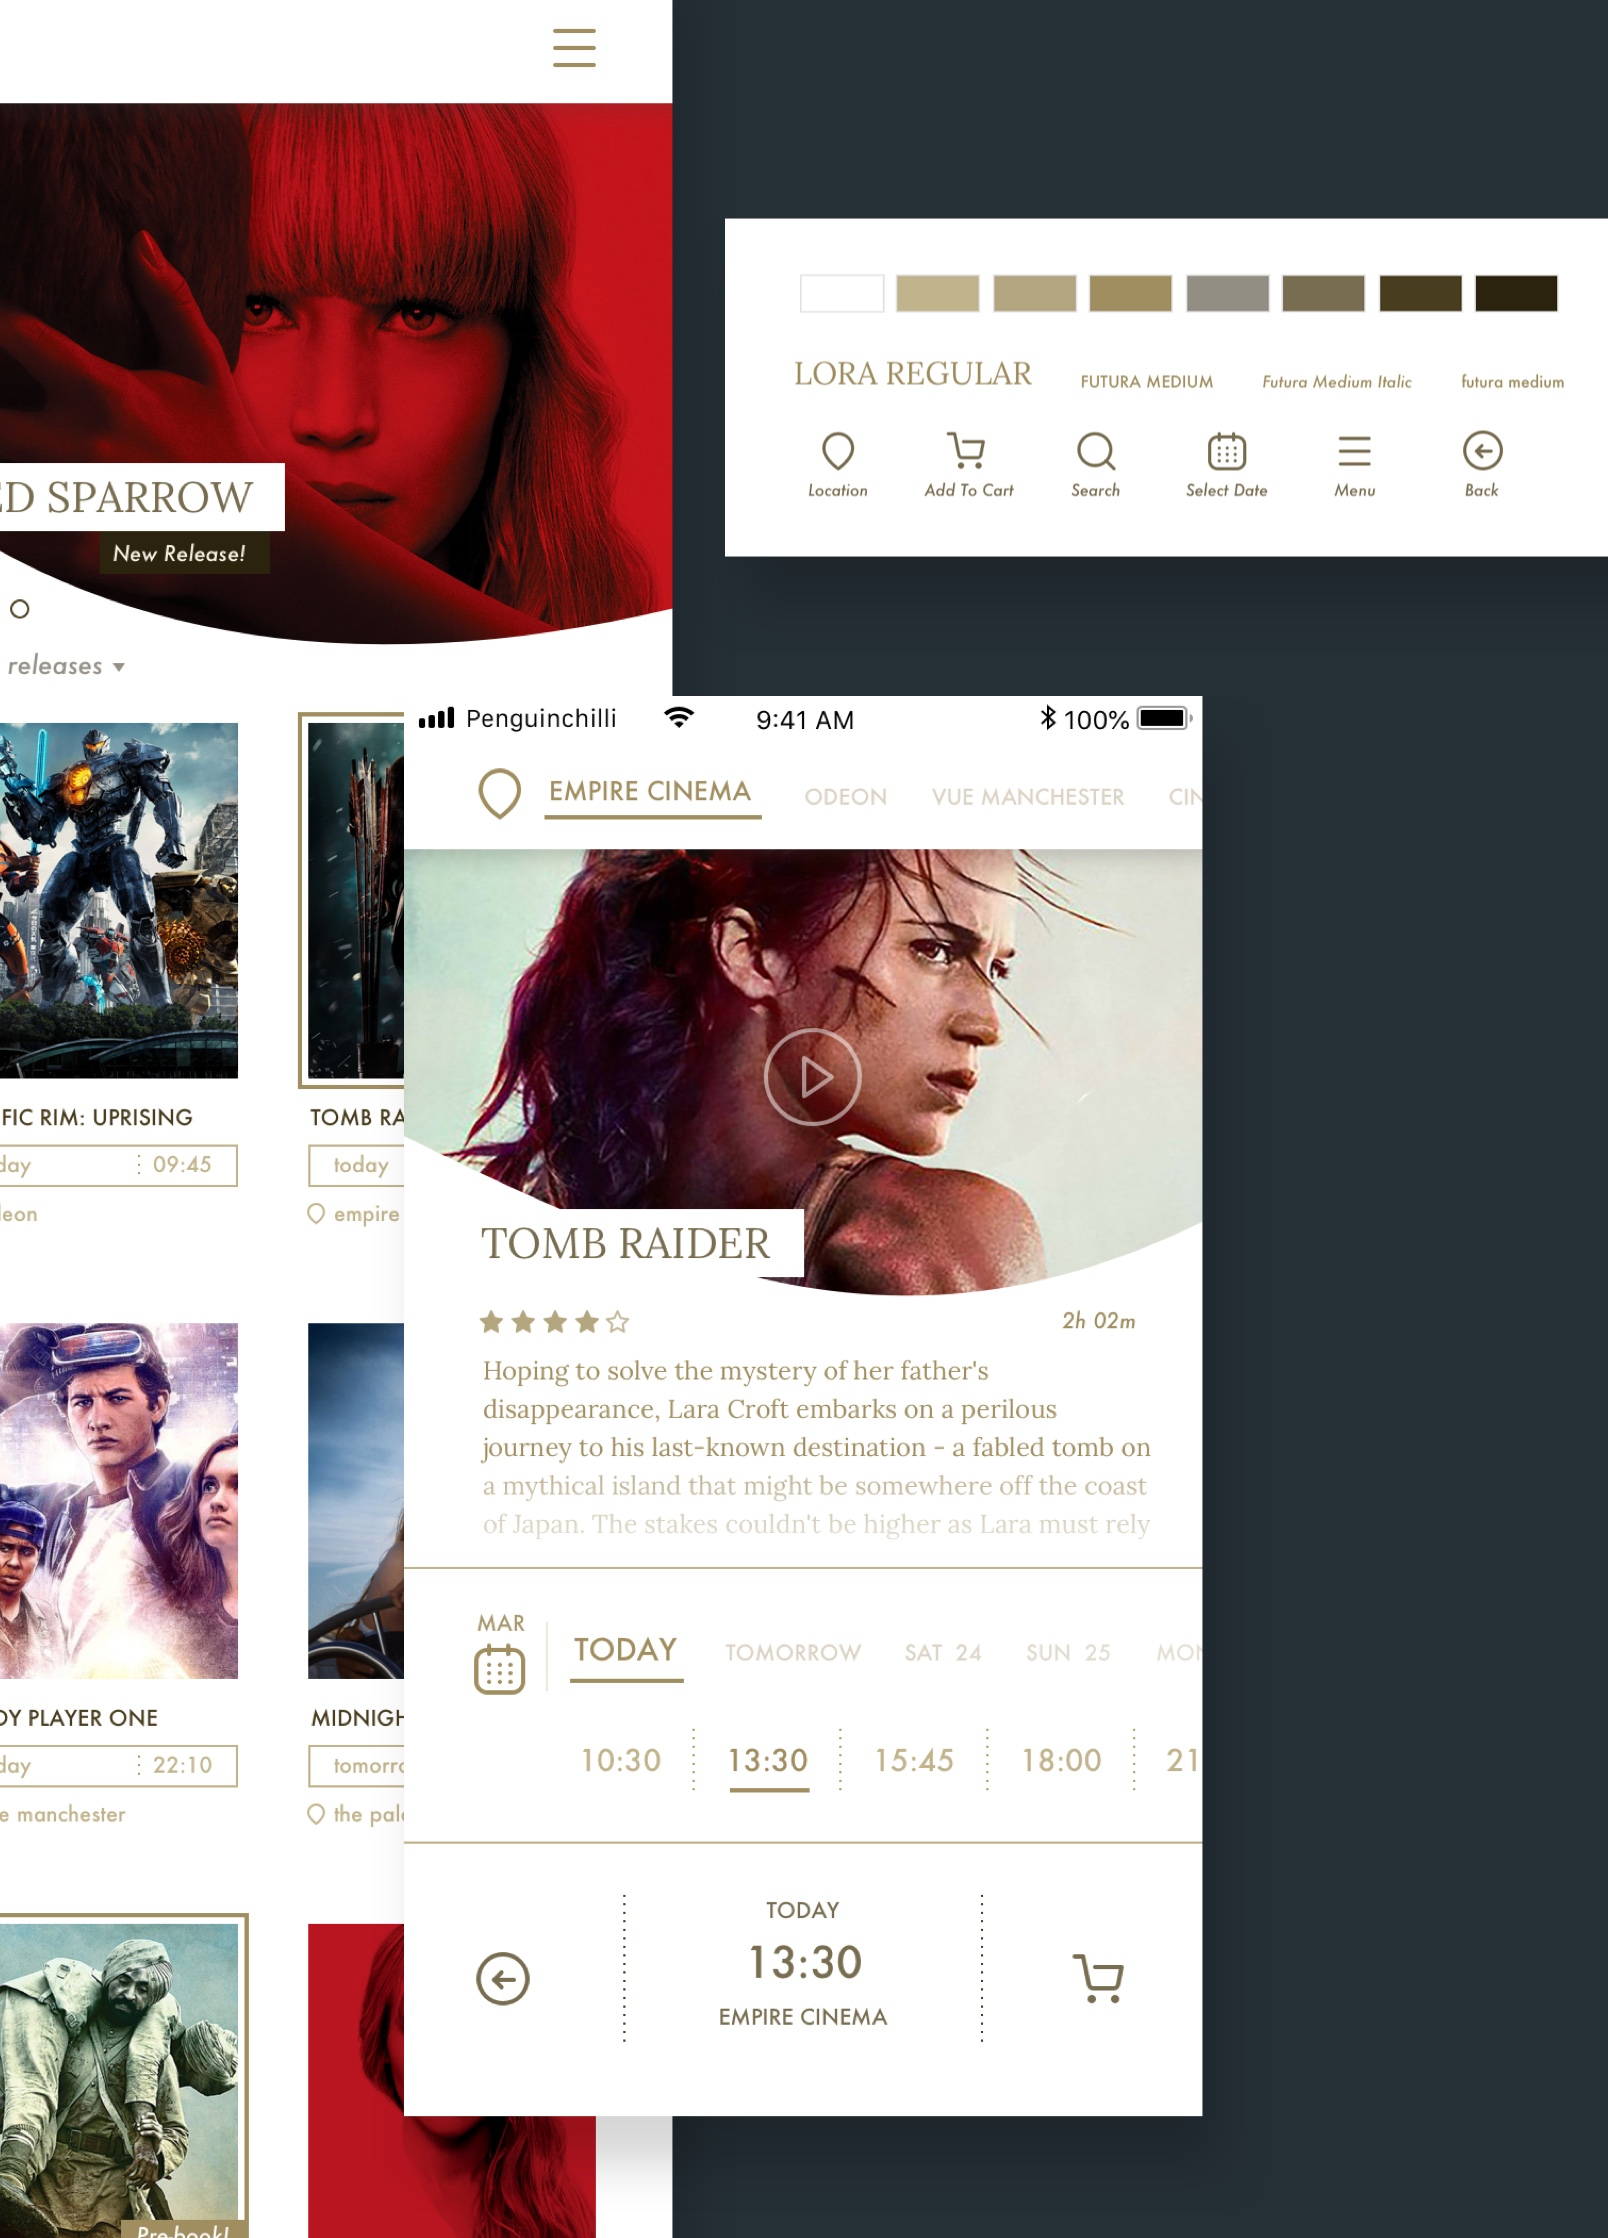 The styling for the movie booking app